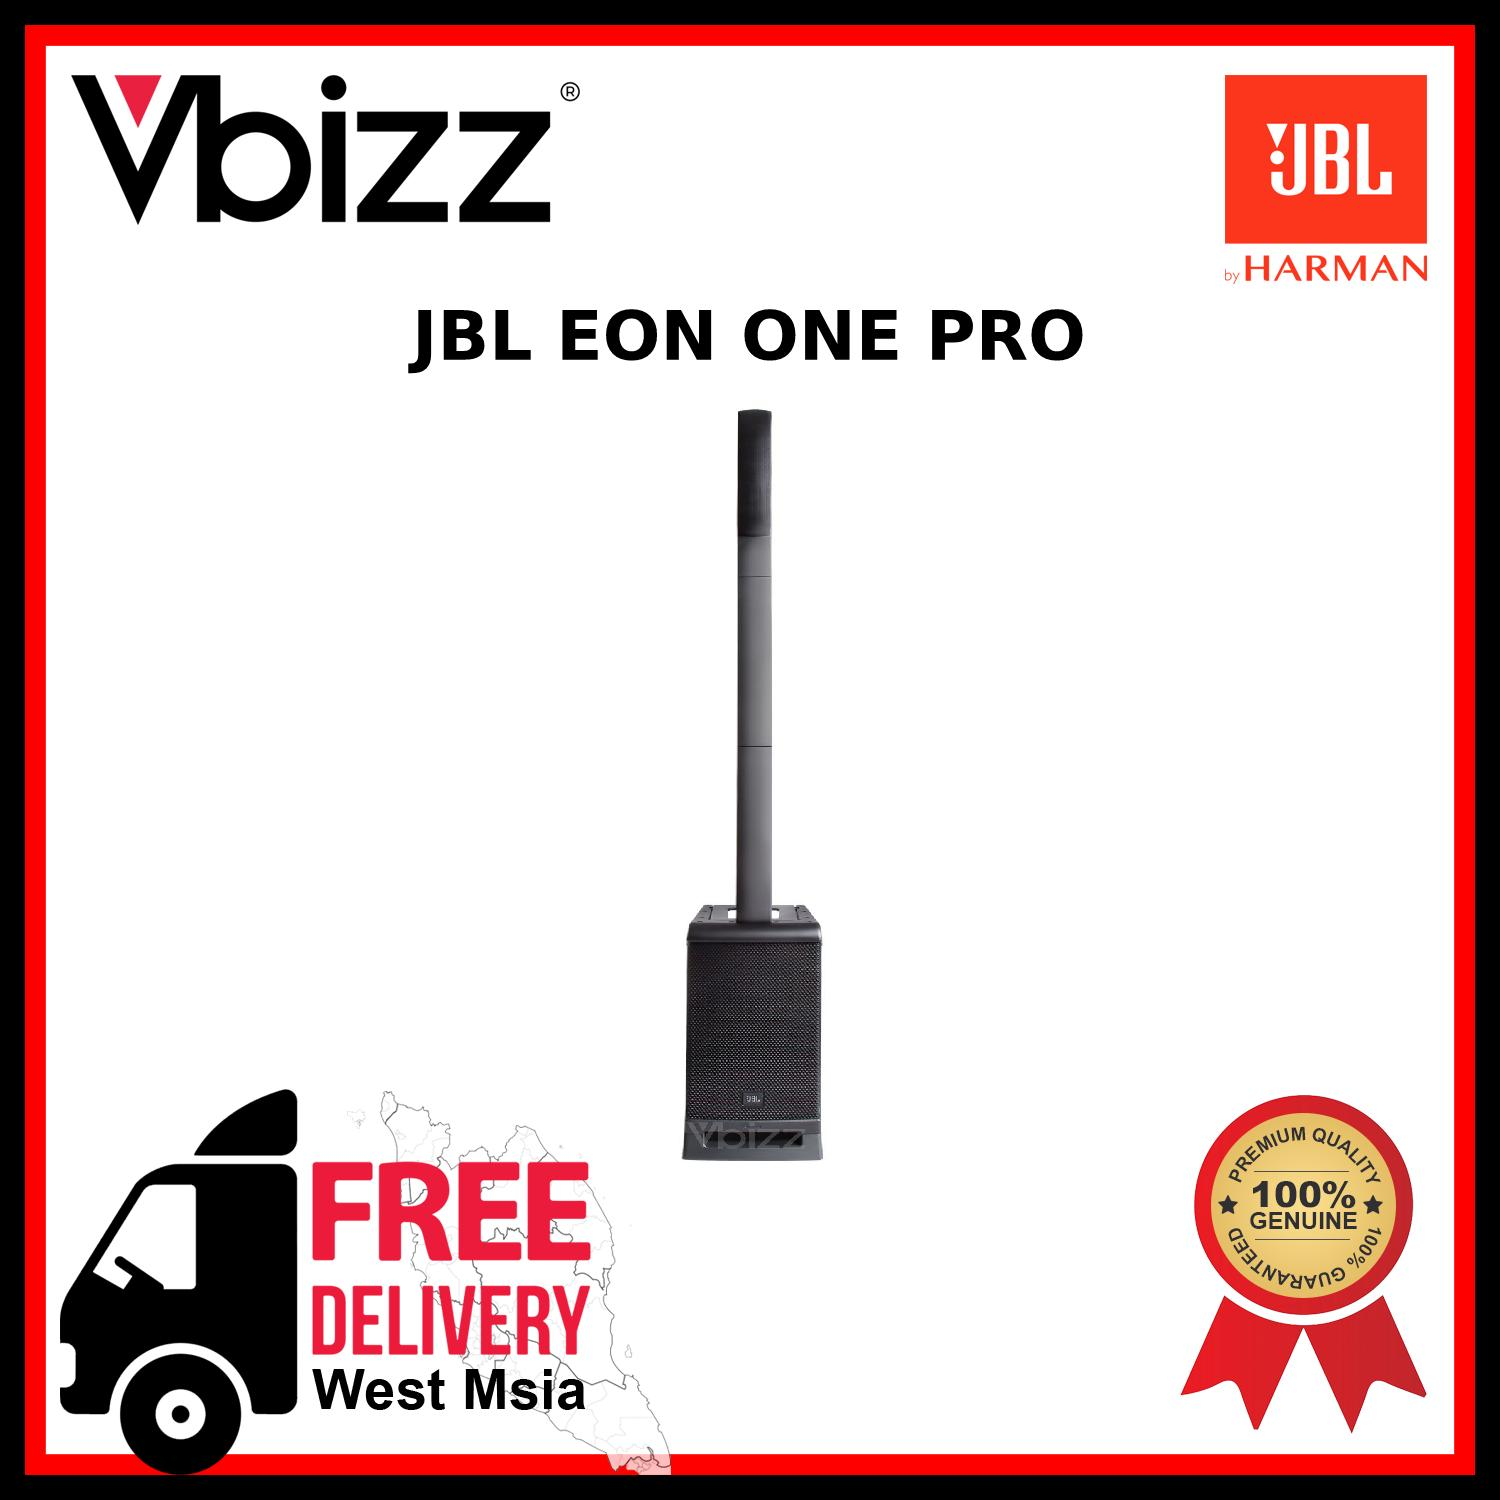 JBL EON ONE PRO *FREE DELIVERY* 8